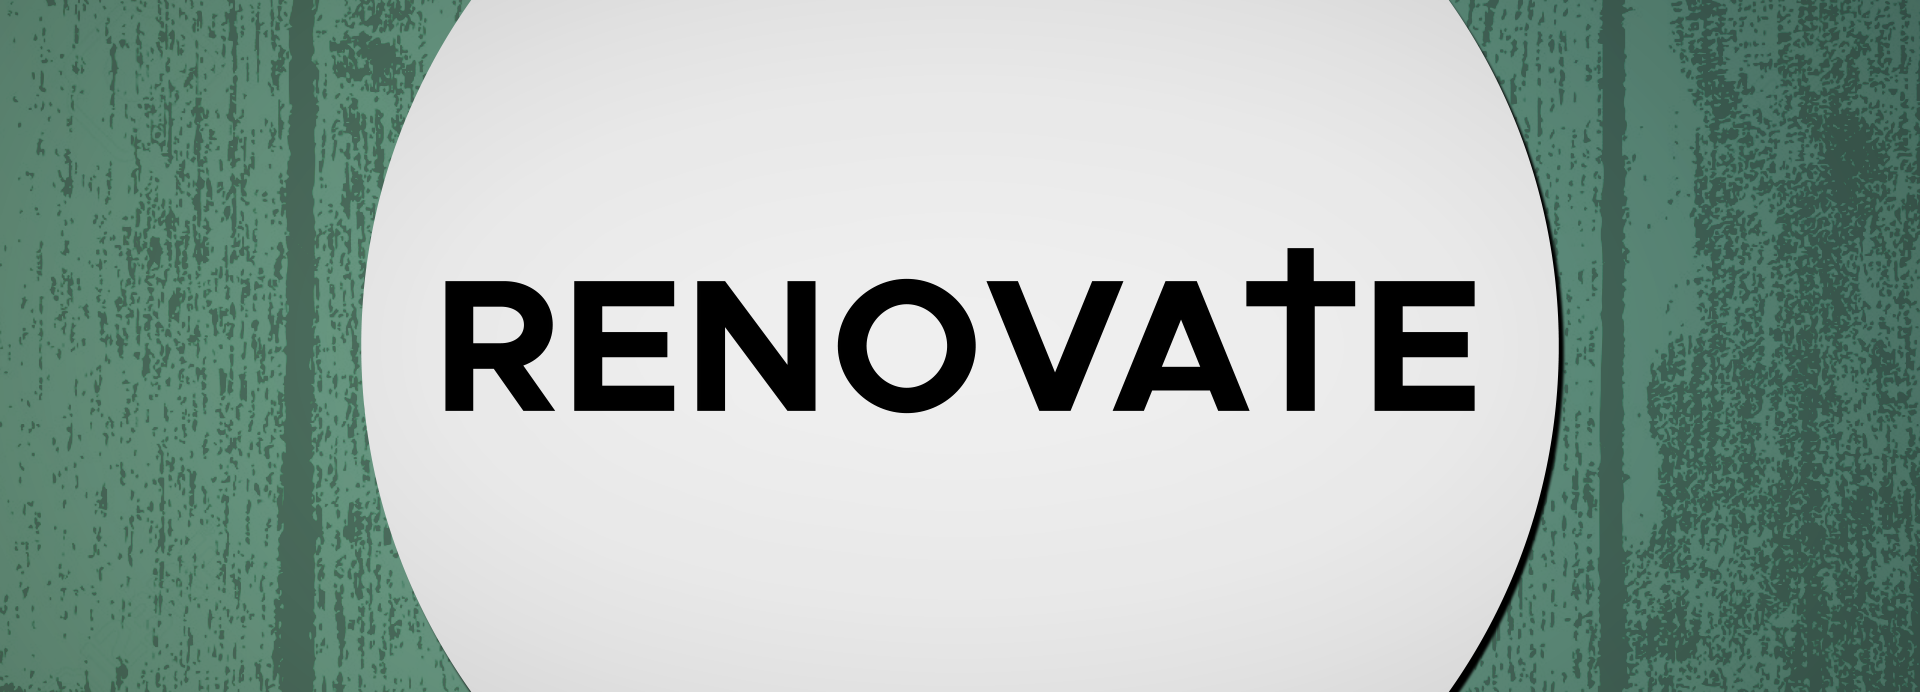 1920x692 Renovate Graphic.png